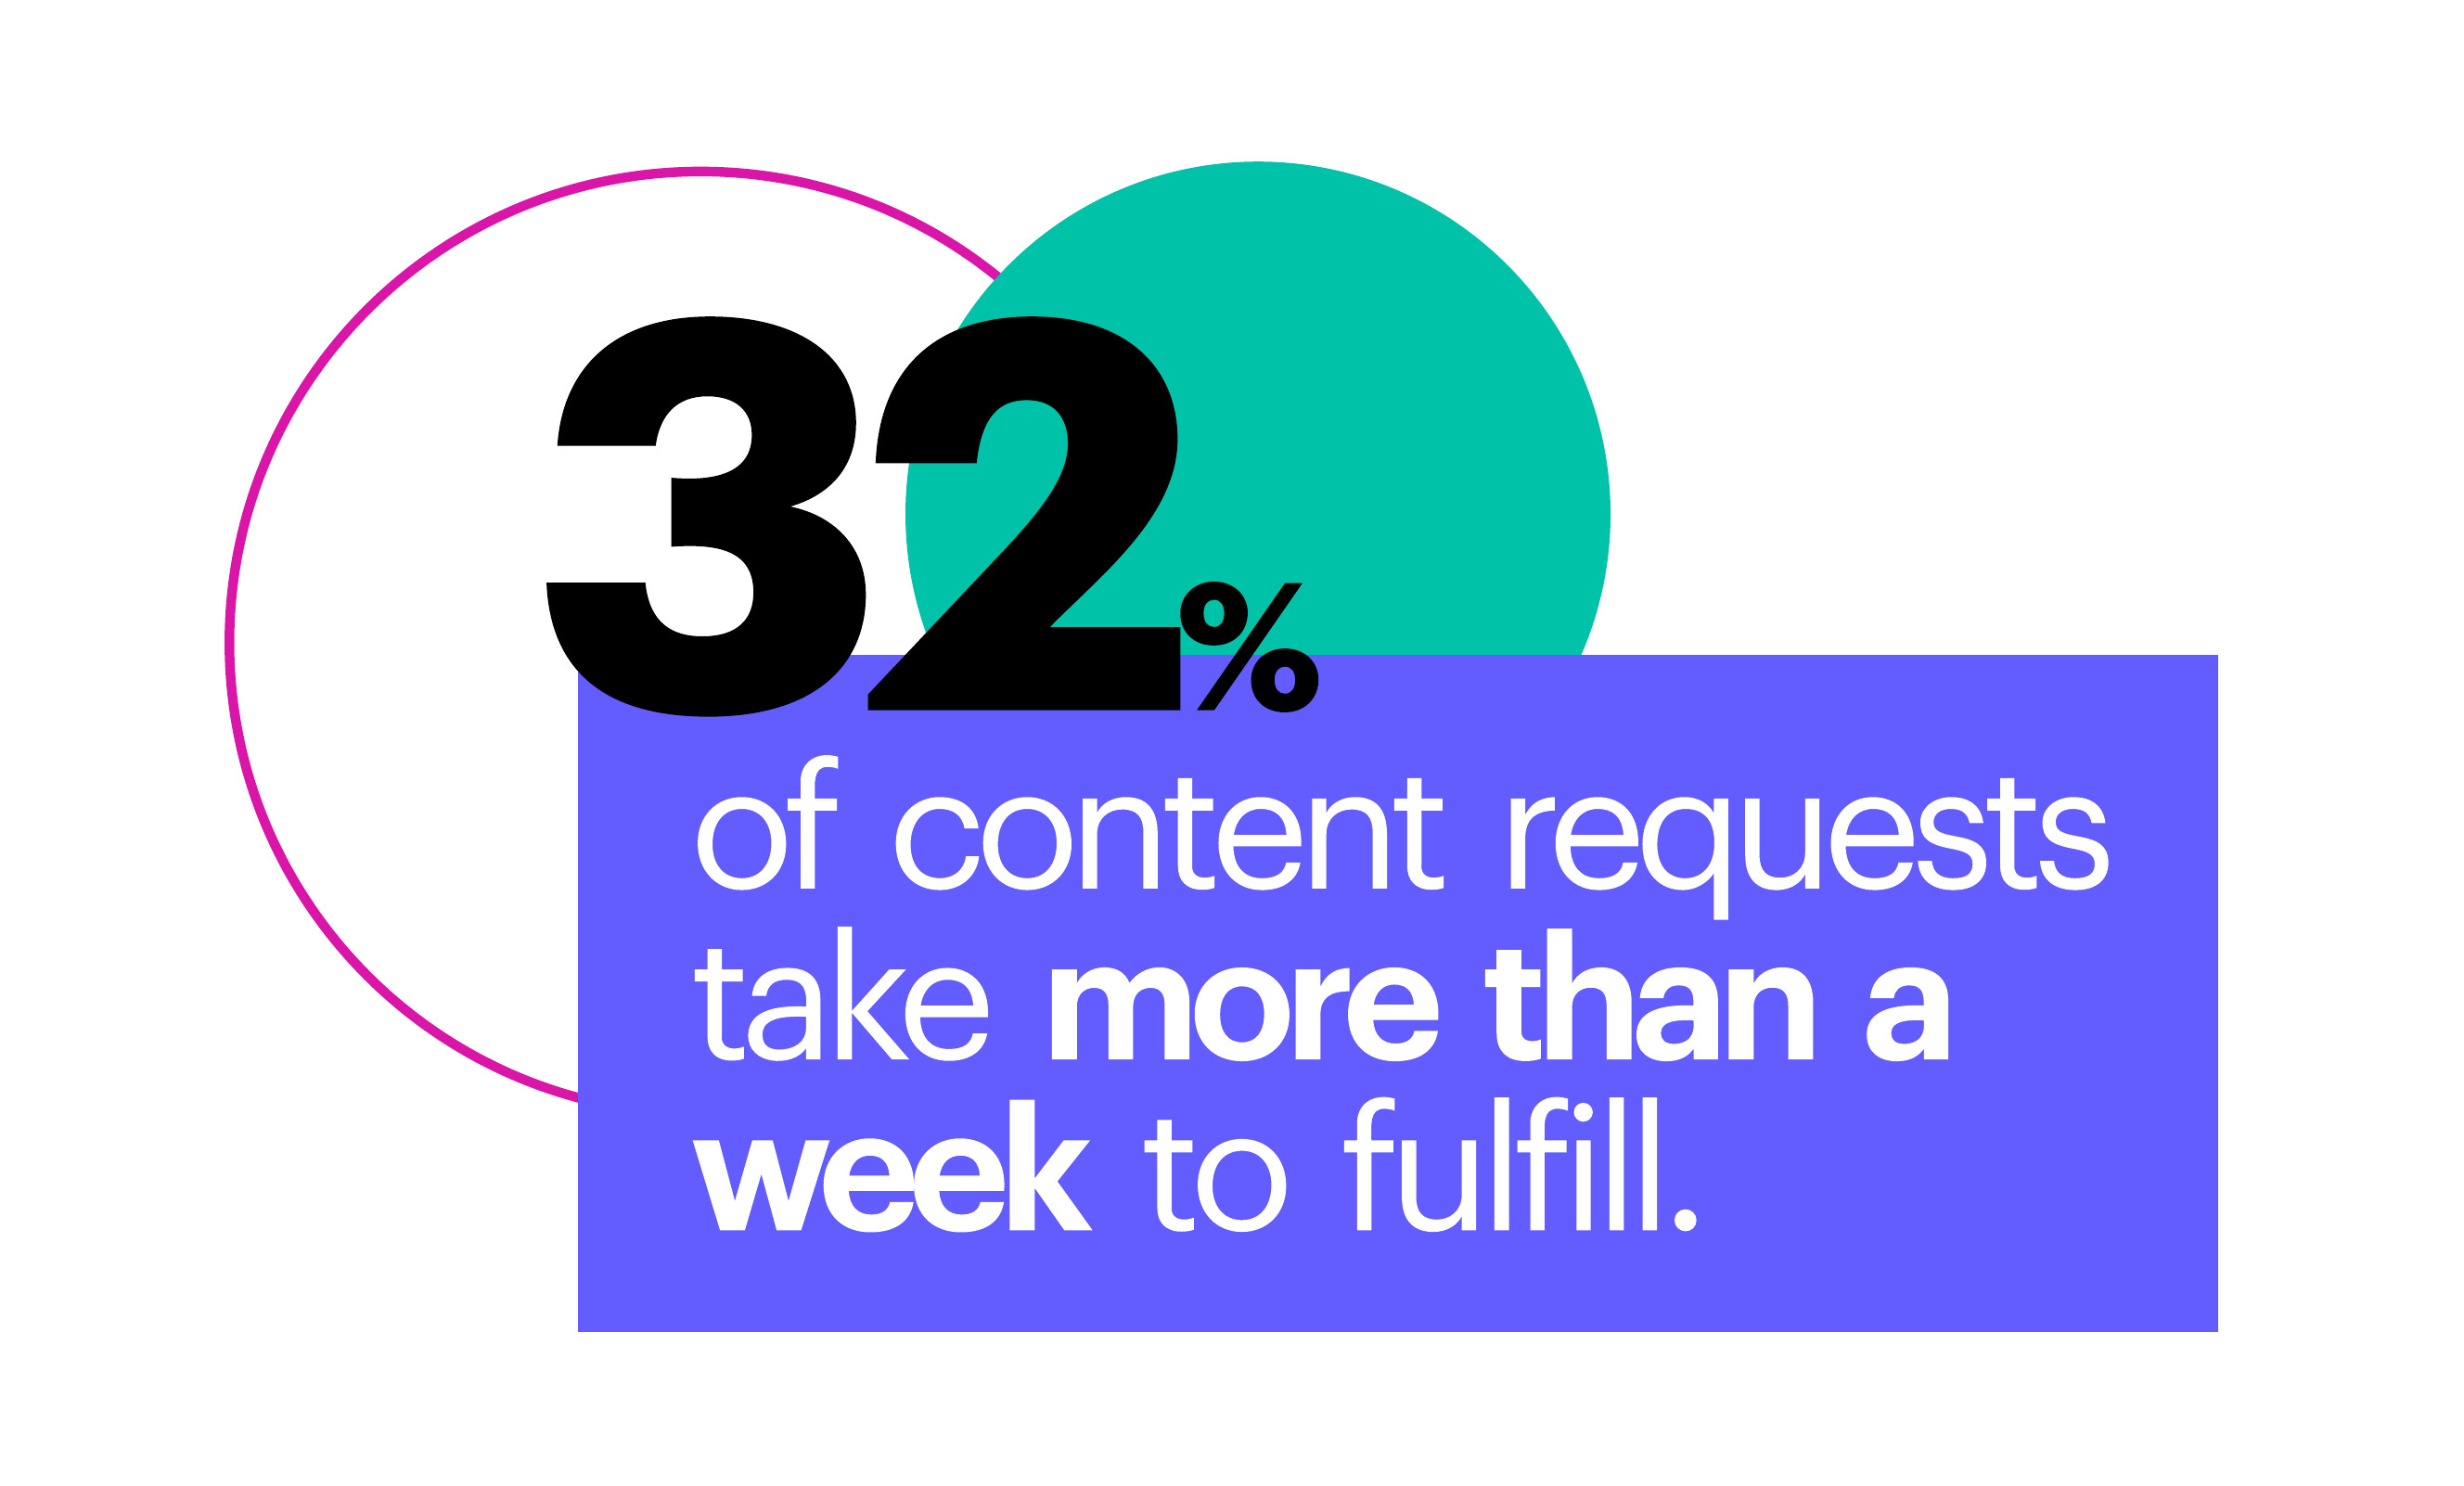 32% of content requests take more than a week to fulfill.